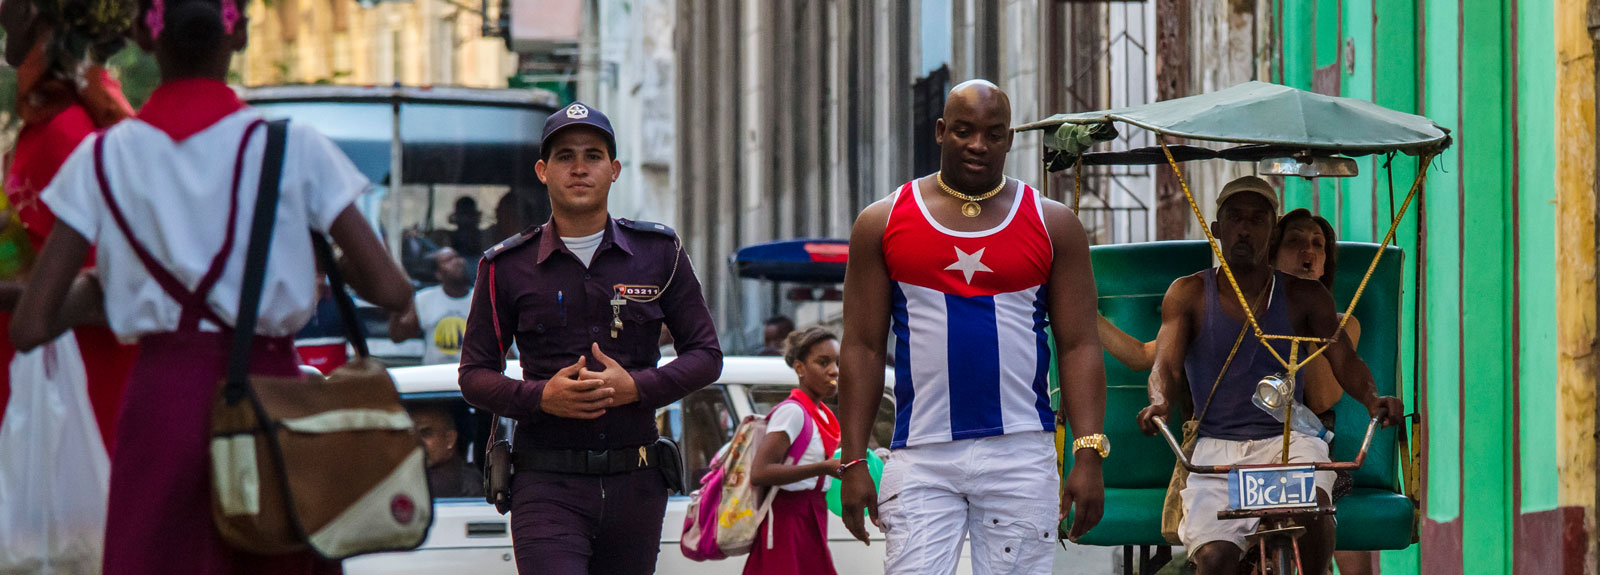 Centro Habana – police man and young man with Cuban flag shirt